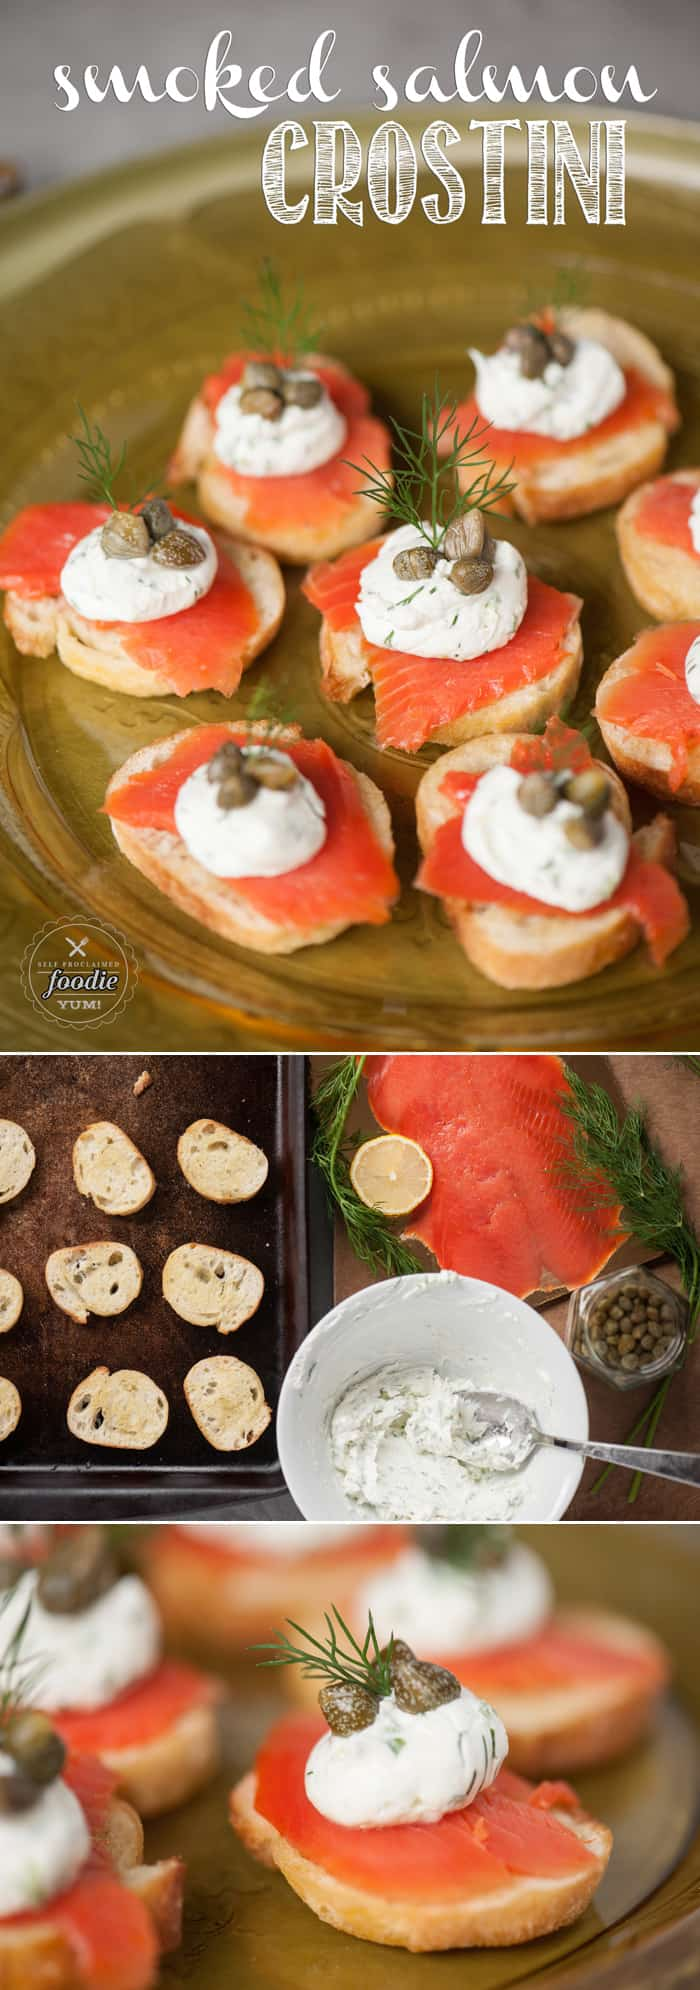 If you\'re looking for an elegant and tasty yet easy to make appetizer for your next dinner or holiday party, Smoked Salmon Crostini is always a favorite!